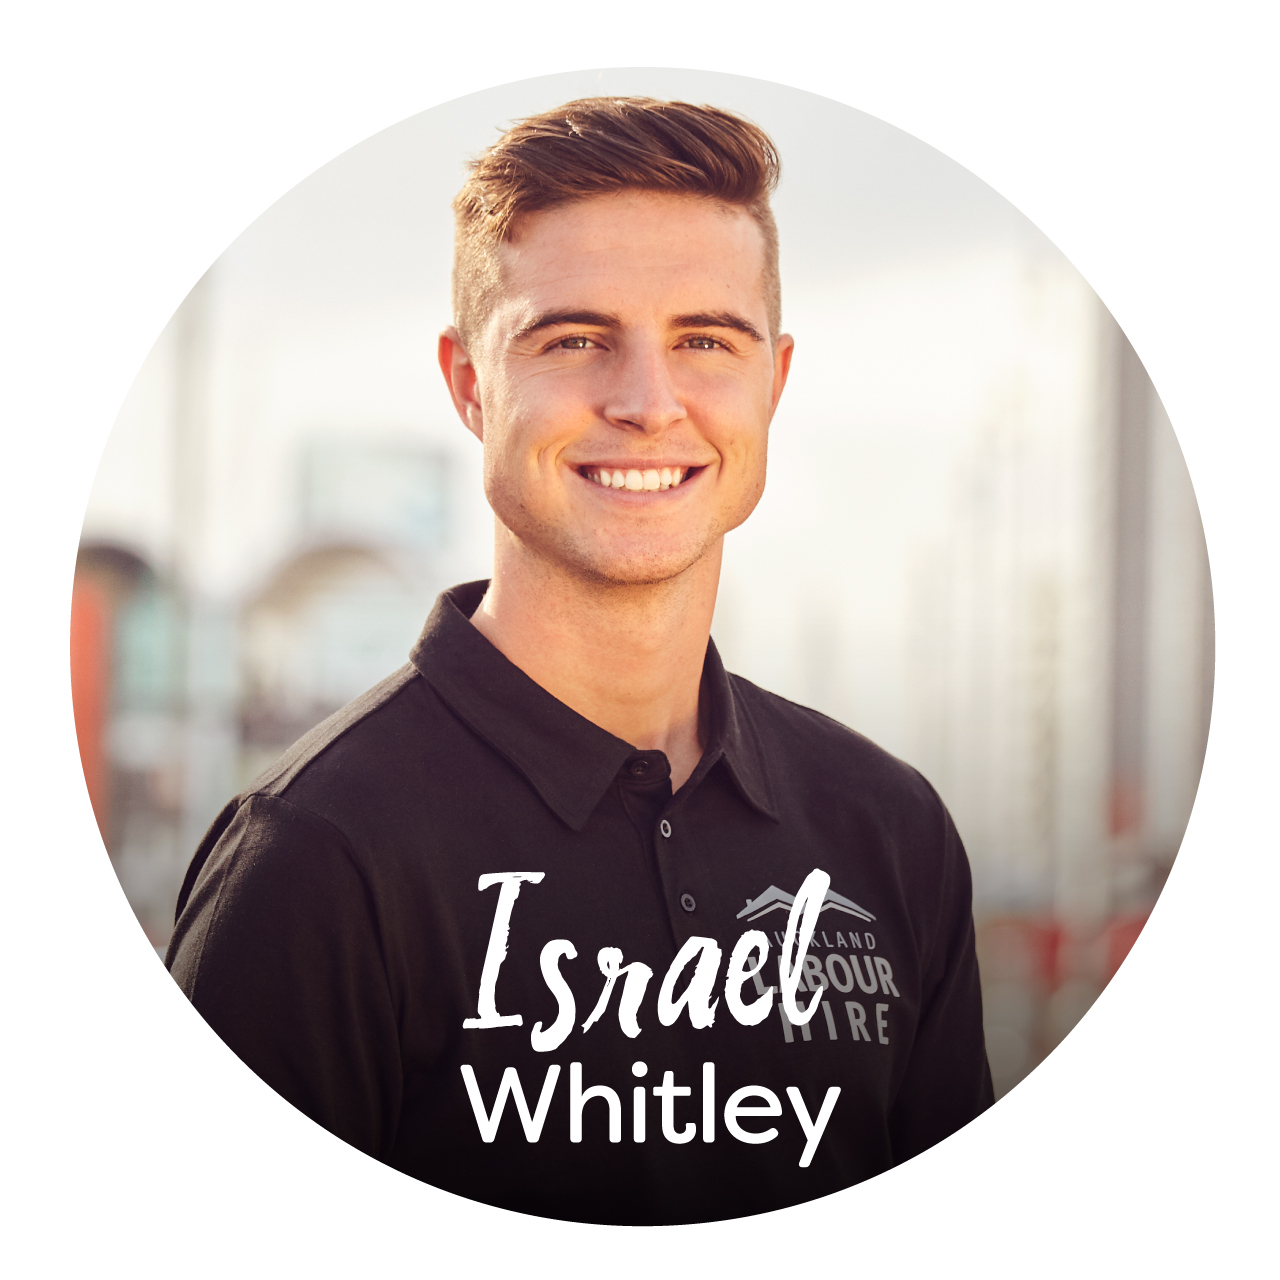 A picture of Israel 'Izzy' Whitley